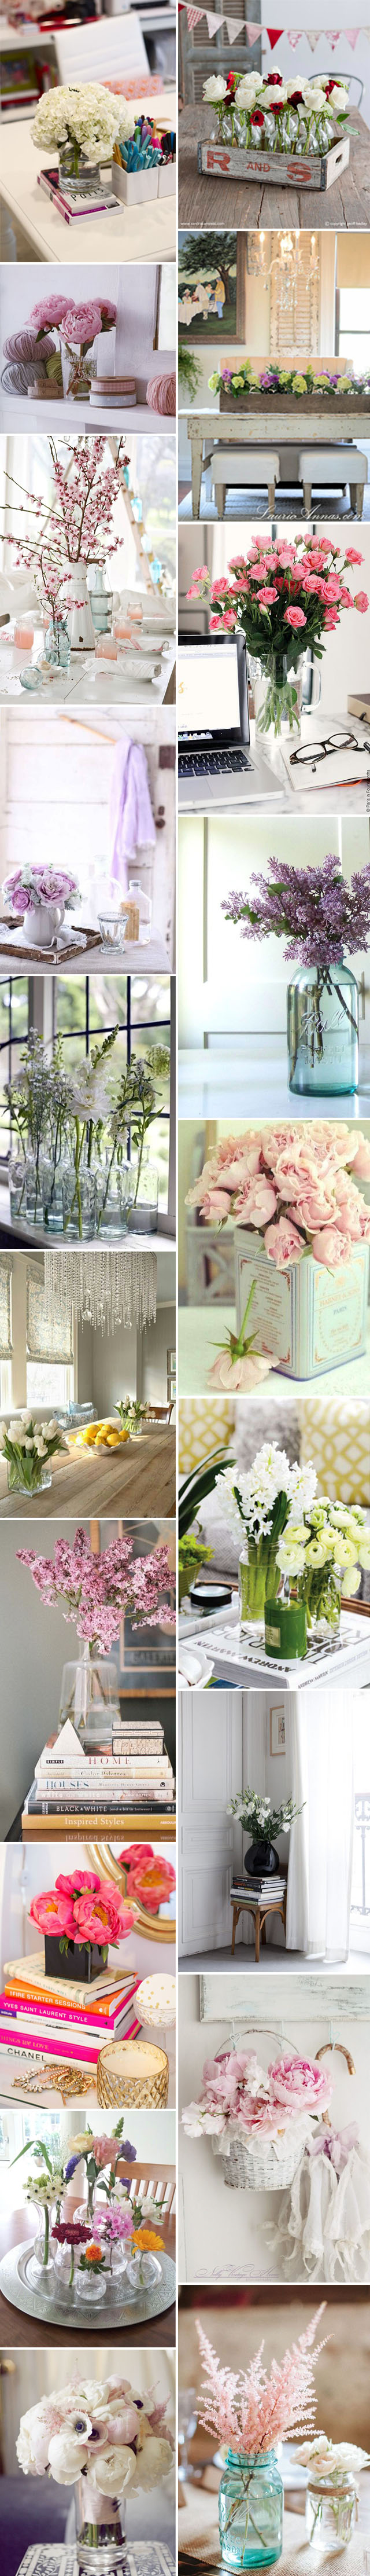 *My new home* Decorar con flores frescas - Decorate with fresh flowers_montaje